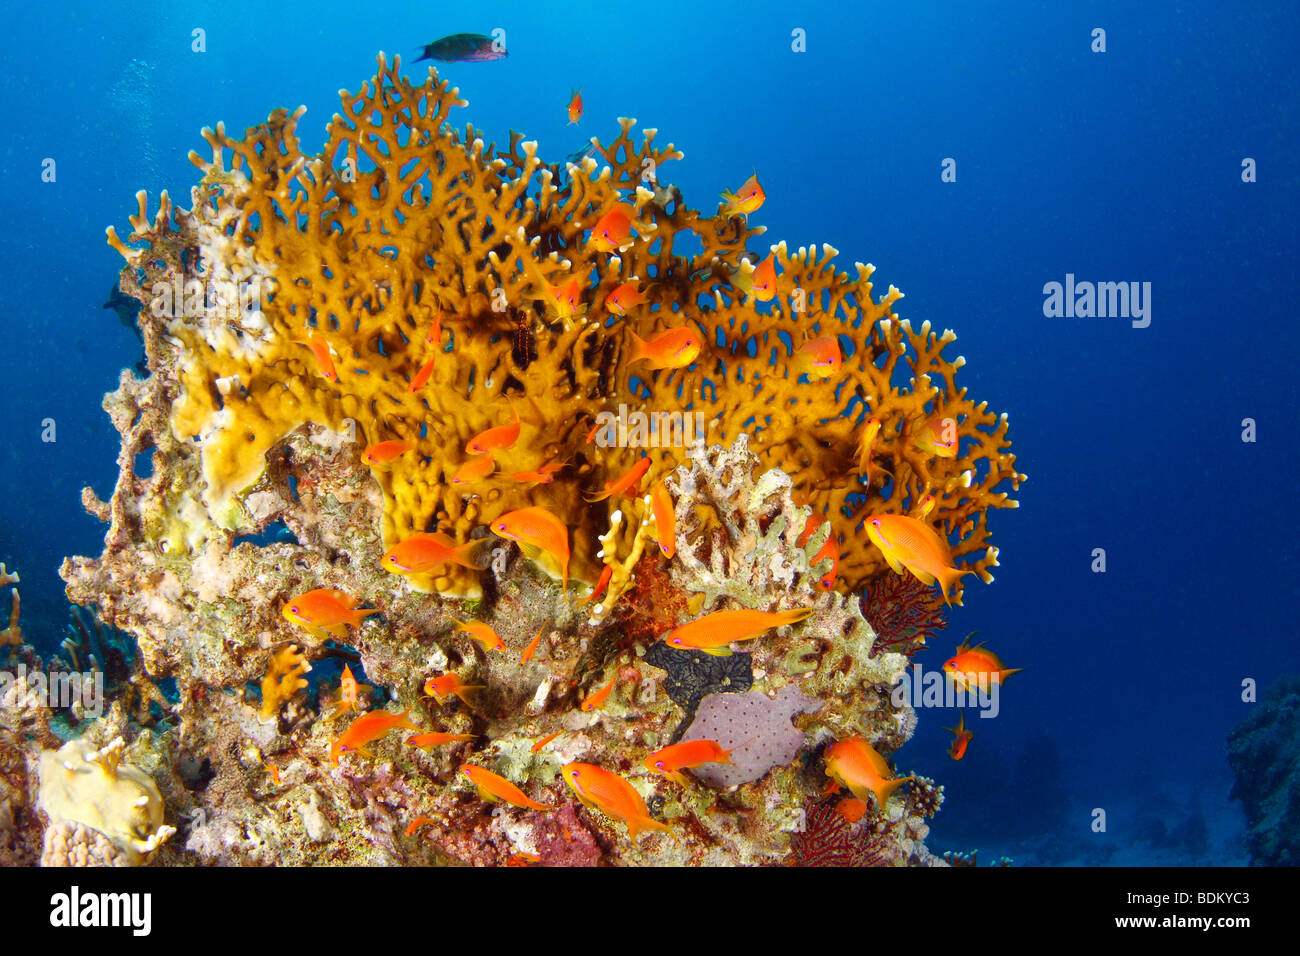 Bright orange-colored fire coral formation surrounded by deep blue water of the Red Sea and red-striped fairy basslets - Stock Image